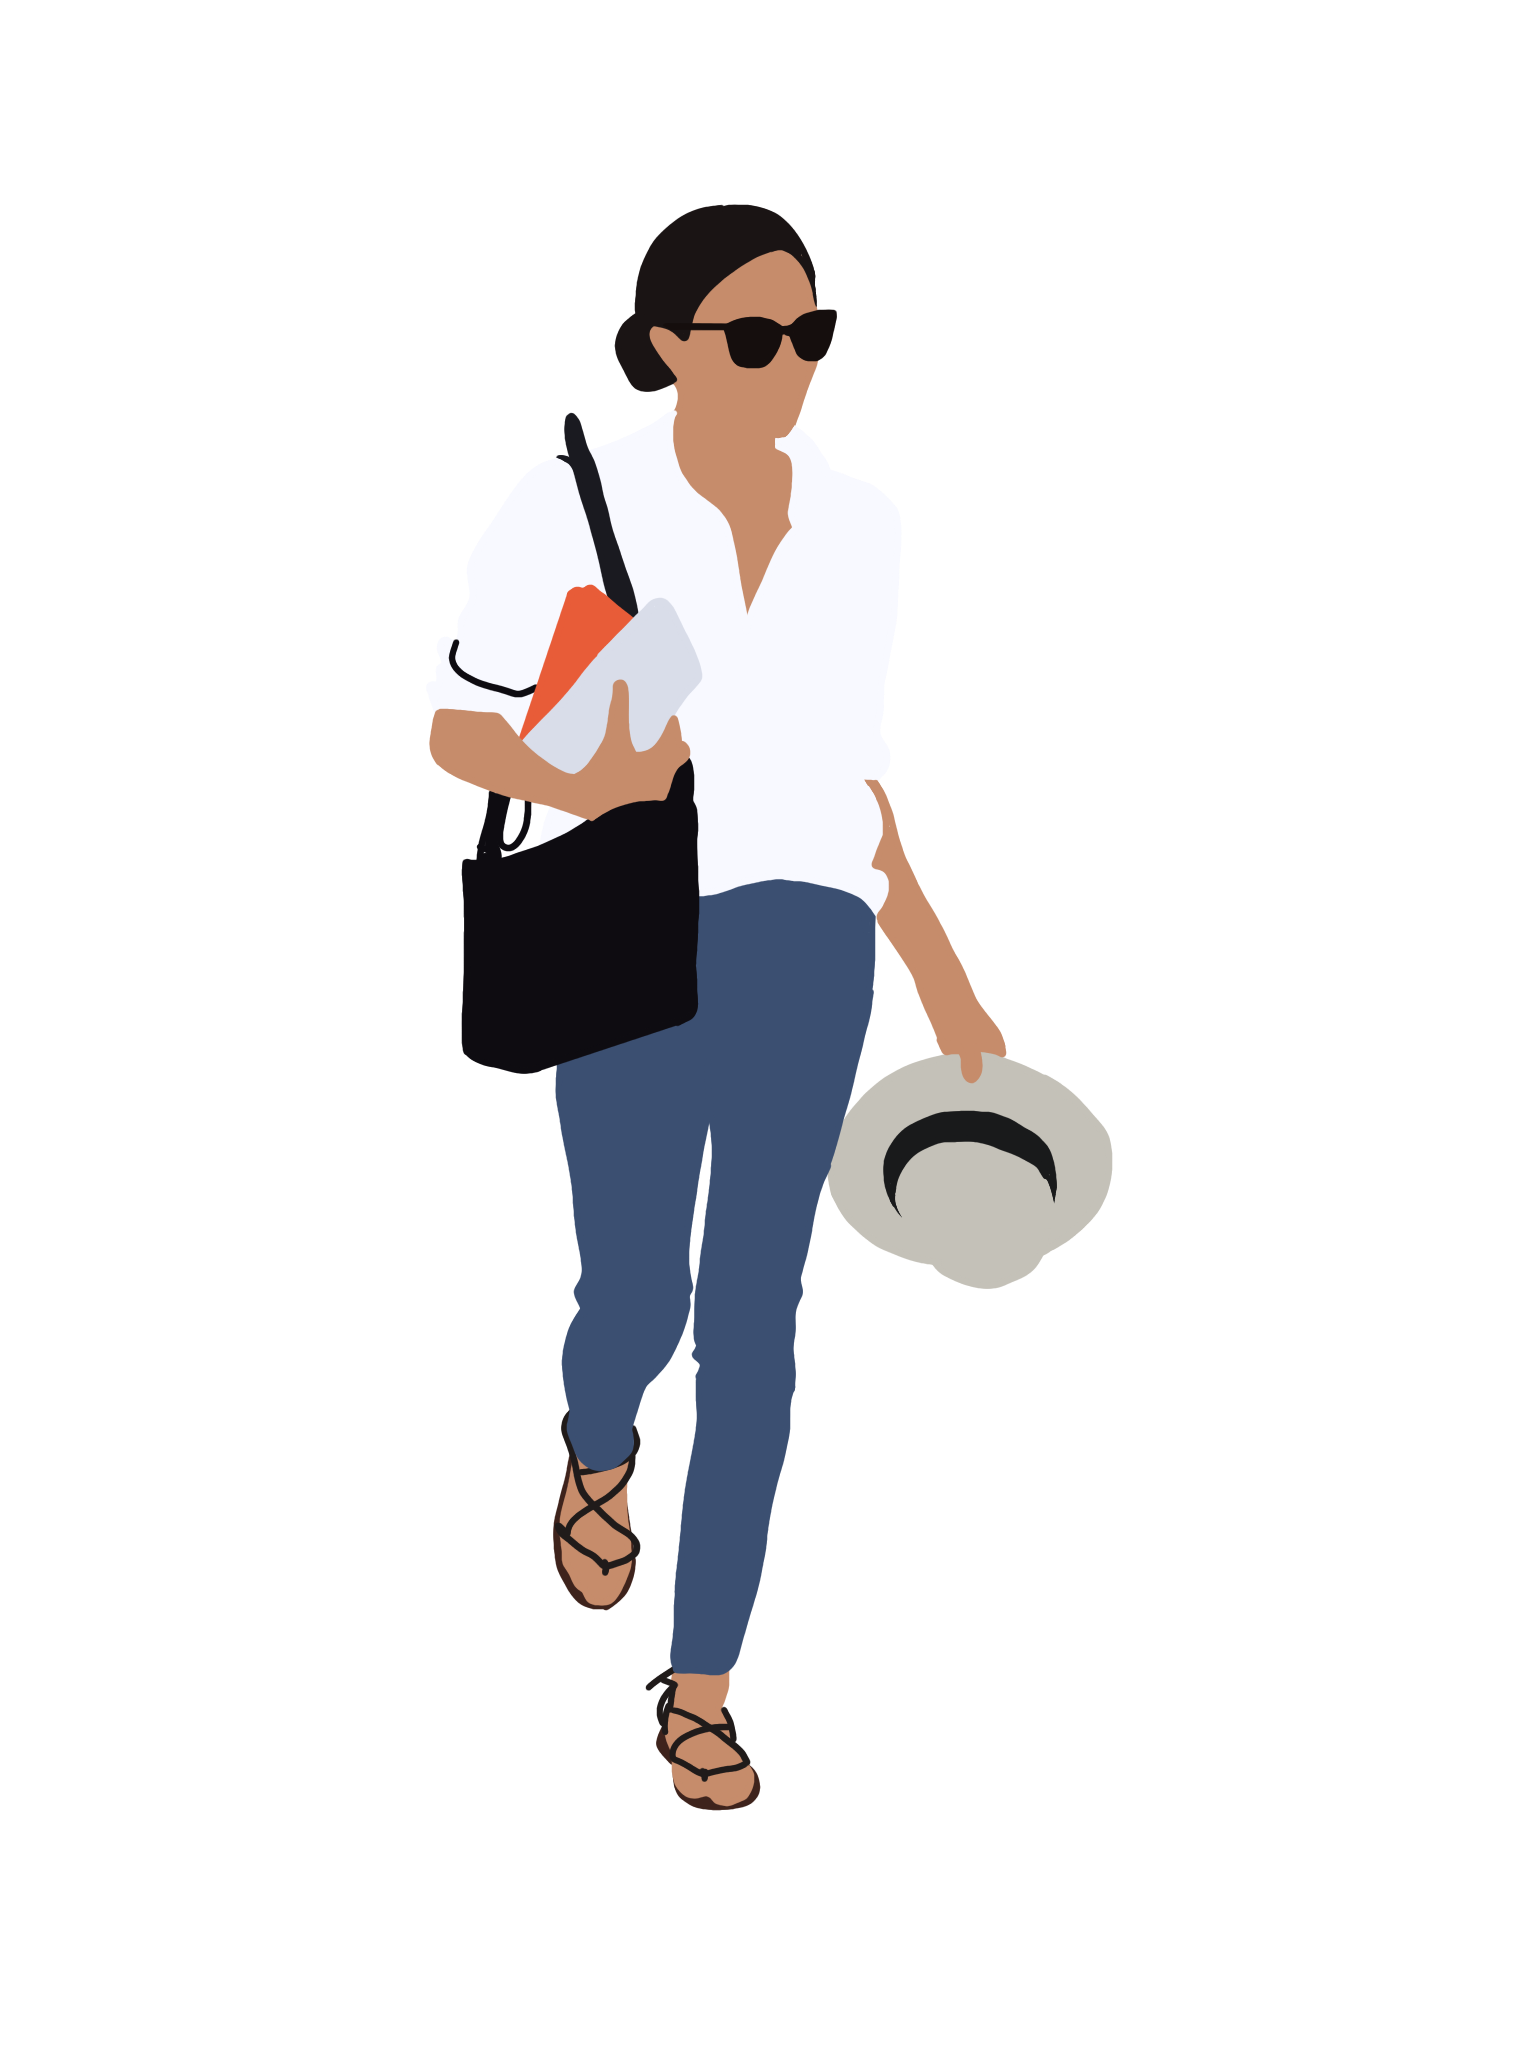 People Flat Illustration on Behance People illustration